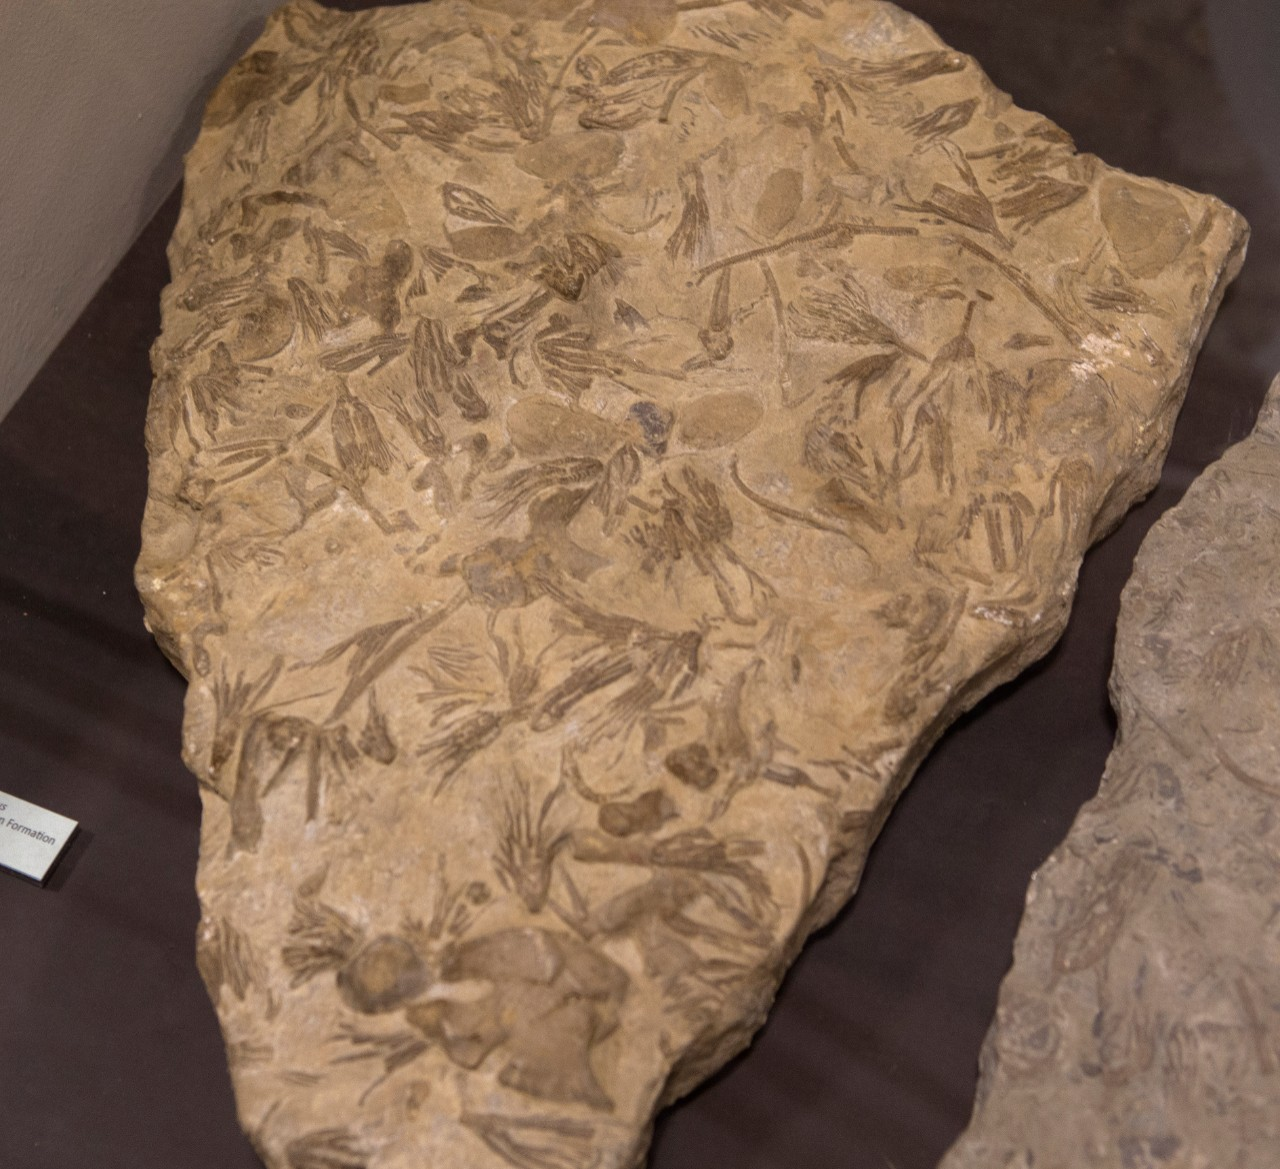 Fossilized sea lilies called crinoids